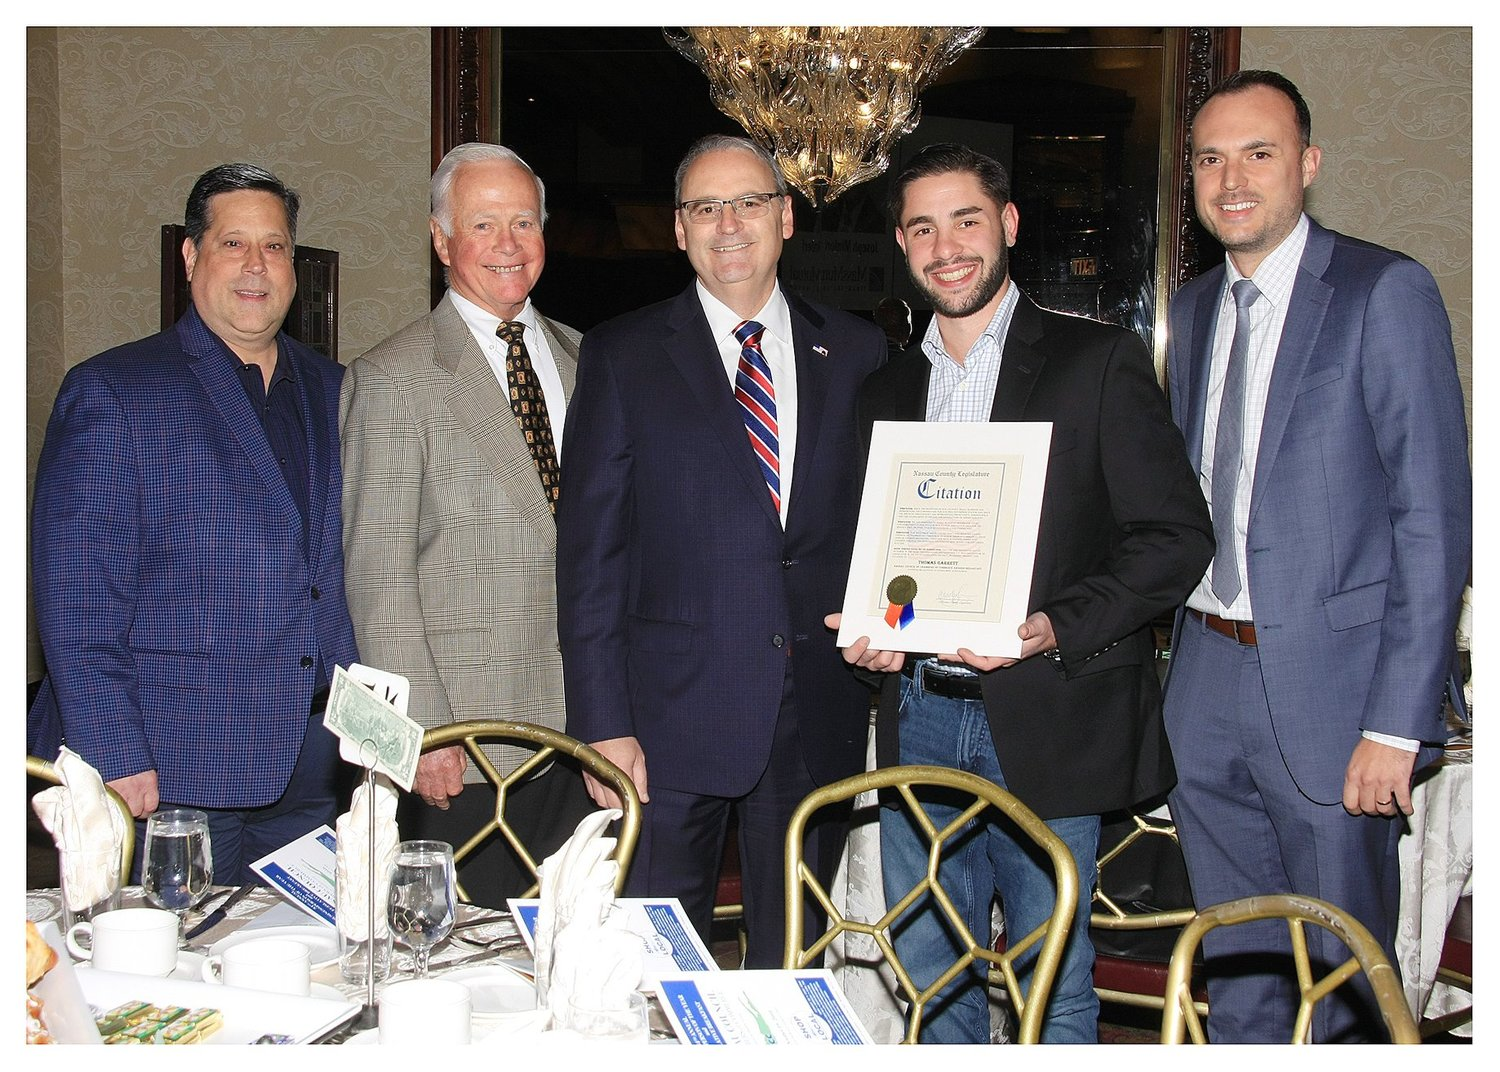 Tom Garrett, second from right, was named one of the Business People of the Year at the Nassau Council of Chambers of Commerce breakfast on Oct. 19. Above, Garrett with Lynbrook Chamber of Commerce Vice President Stephen Wangel, far left, Chamber member Harold Reese, Nassau County Legislator William Gaylor and Chamber Marketing Director Mike Davies.